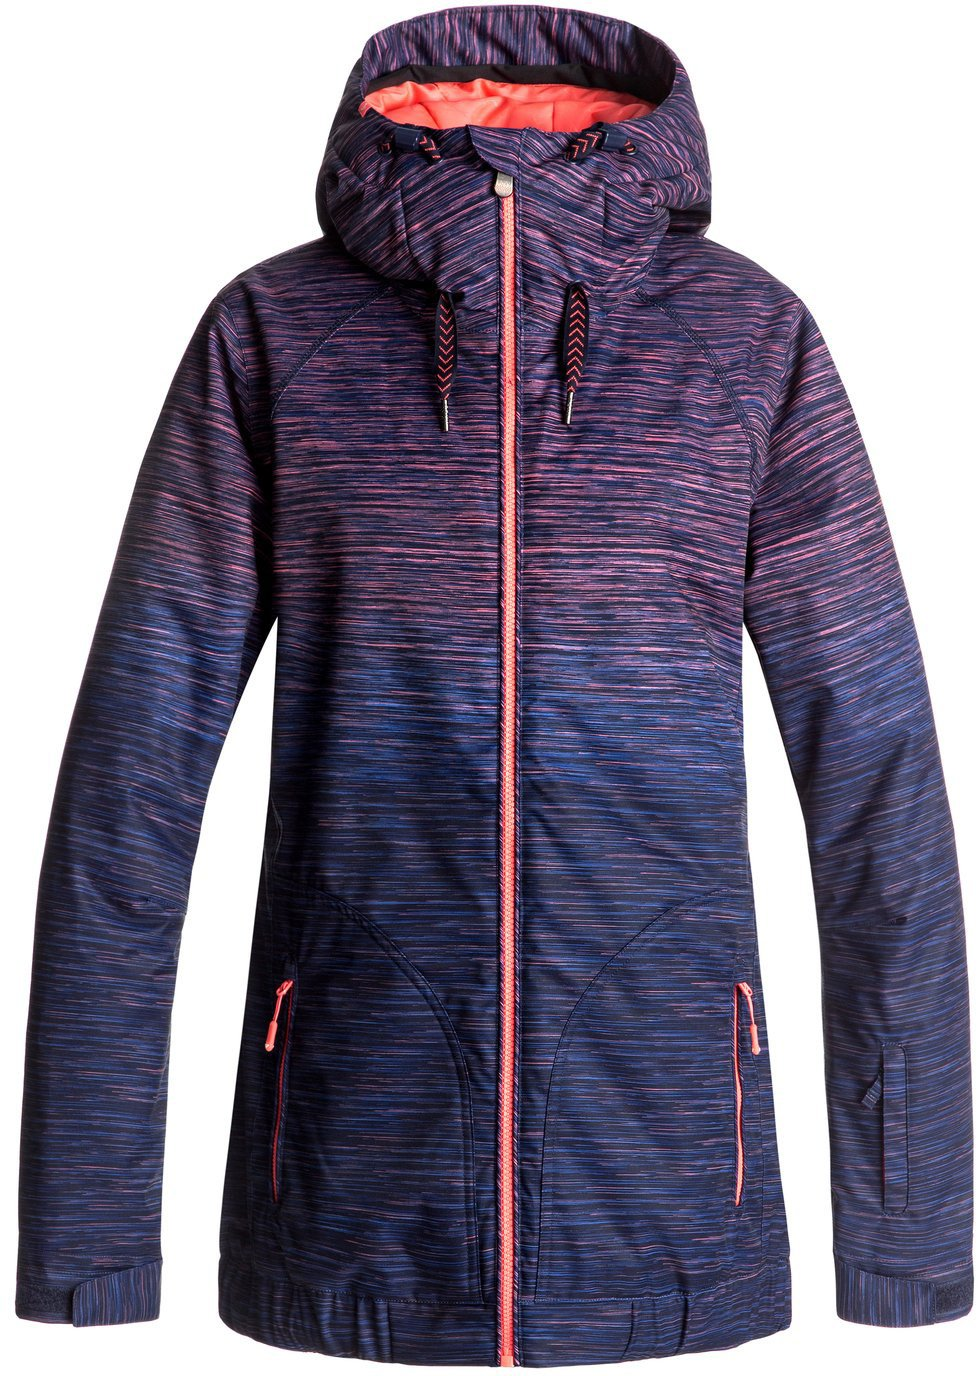 Roxy SNOW Junior's Valley Hoodie Snow Jacket, Neon Grapefruit_Space Dye Grad, L by Roxy